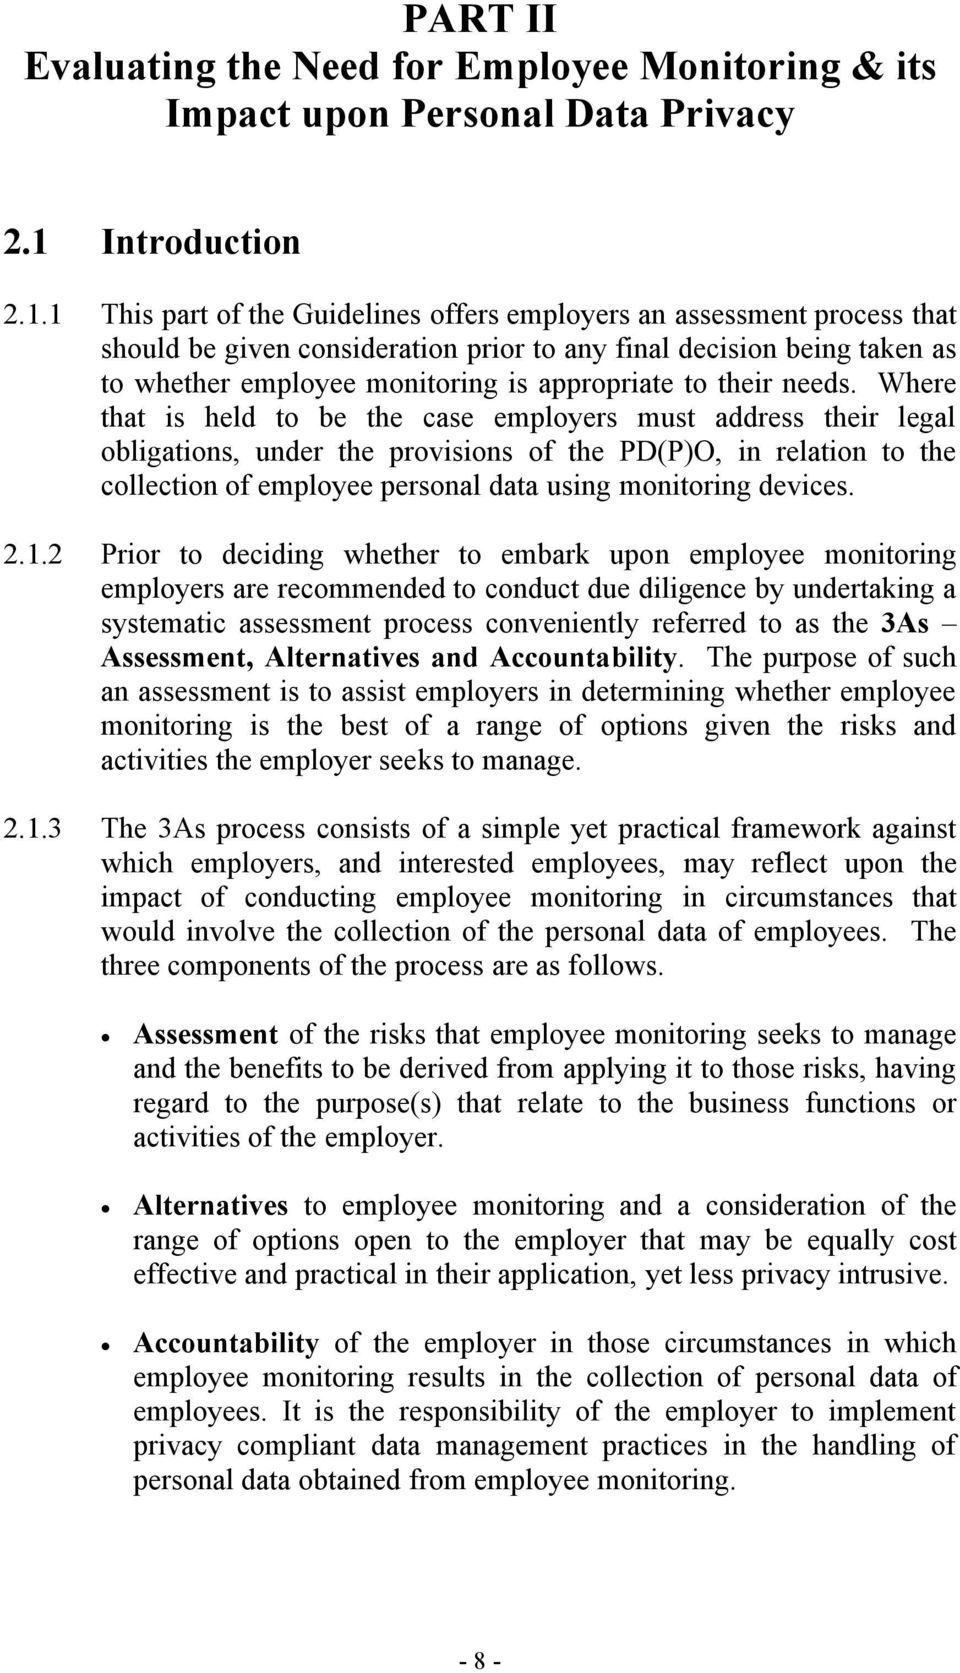 1 This part of the Guidelines offers employers an assessment process that should be given consideration prior to any final decision being taken as to whether employee monitoring is appropriate to